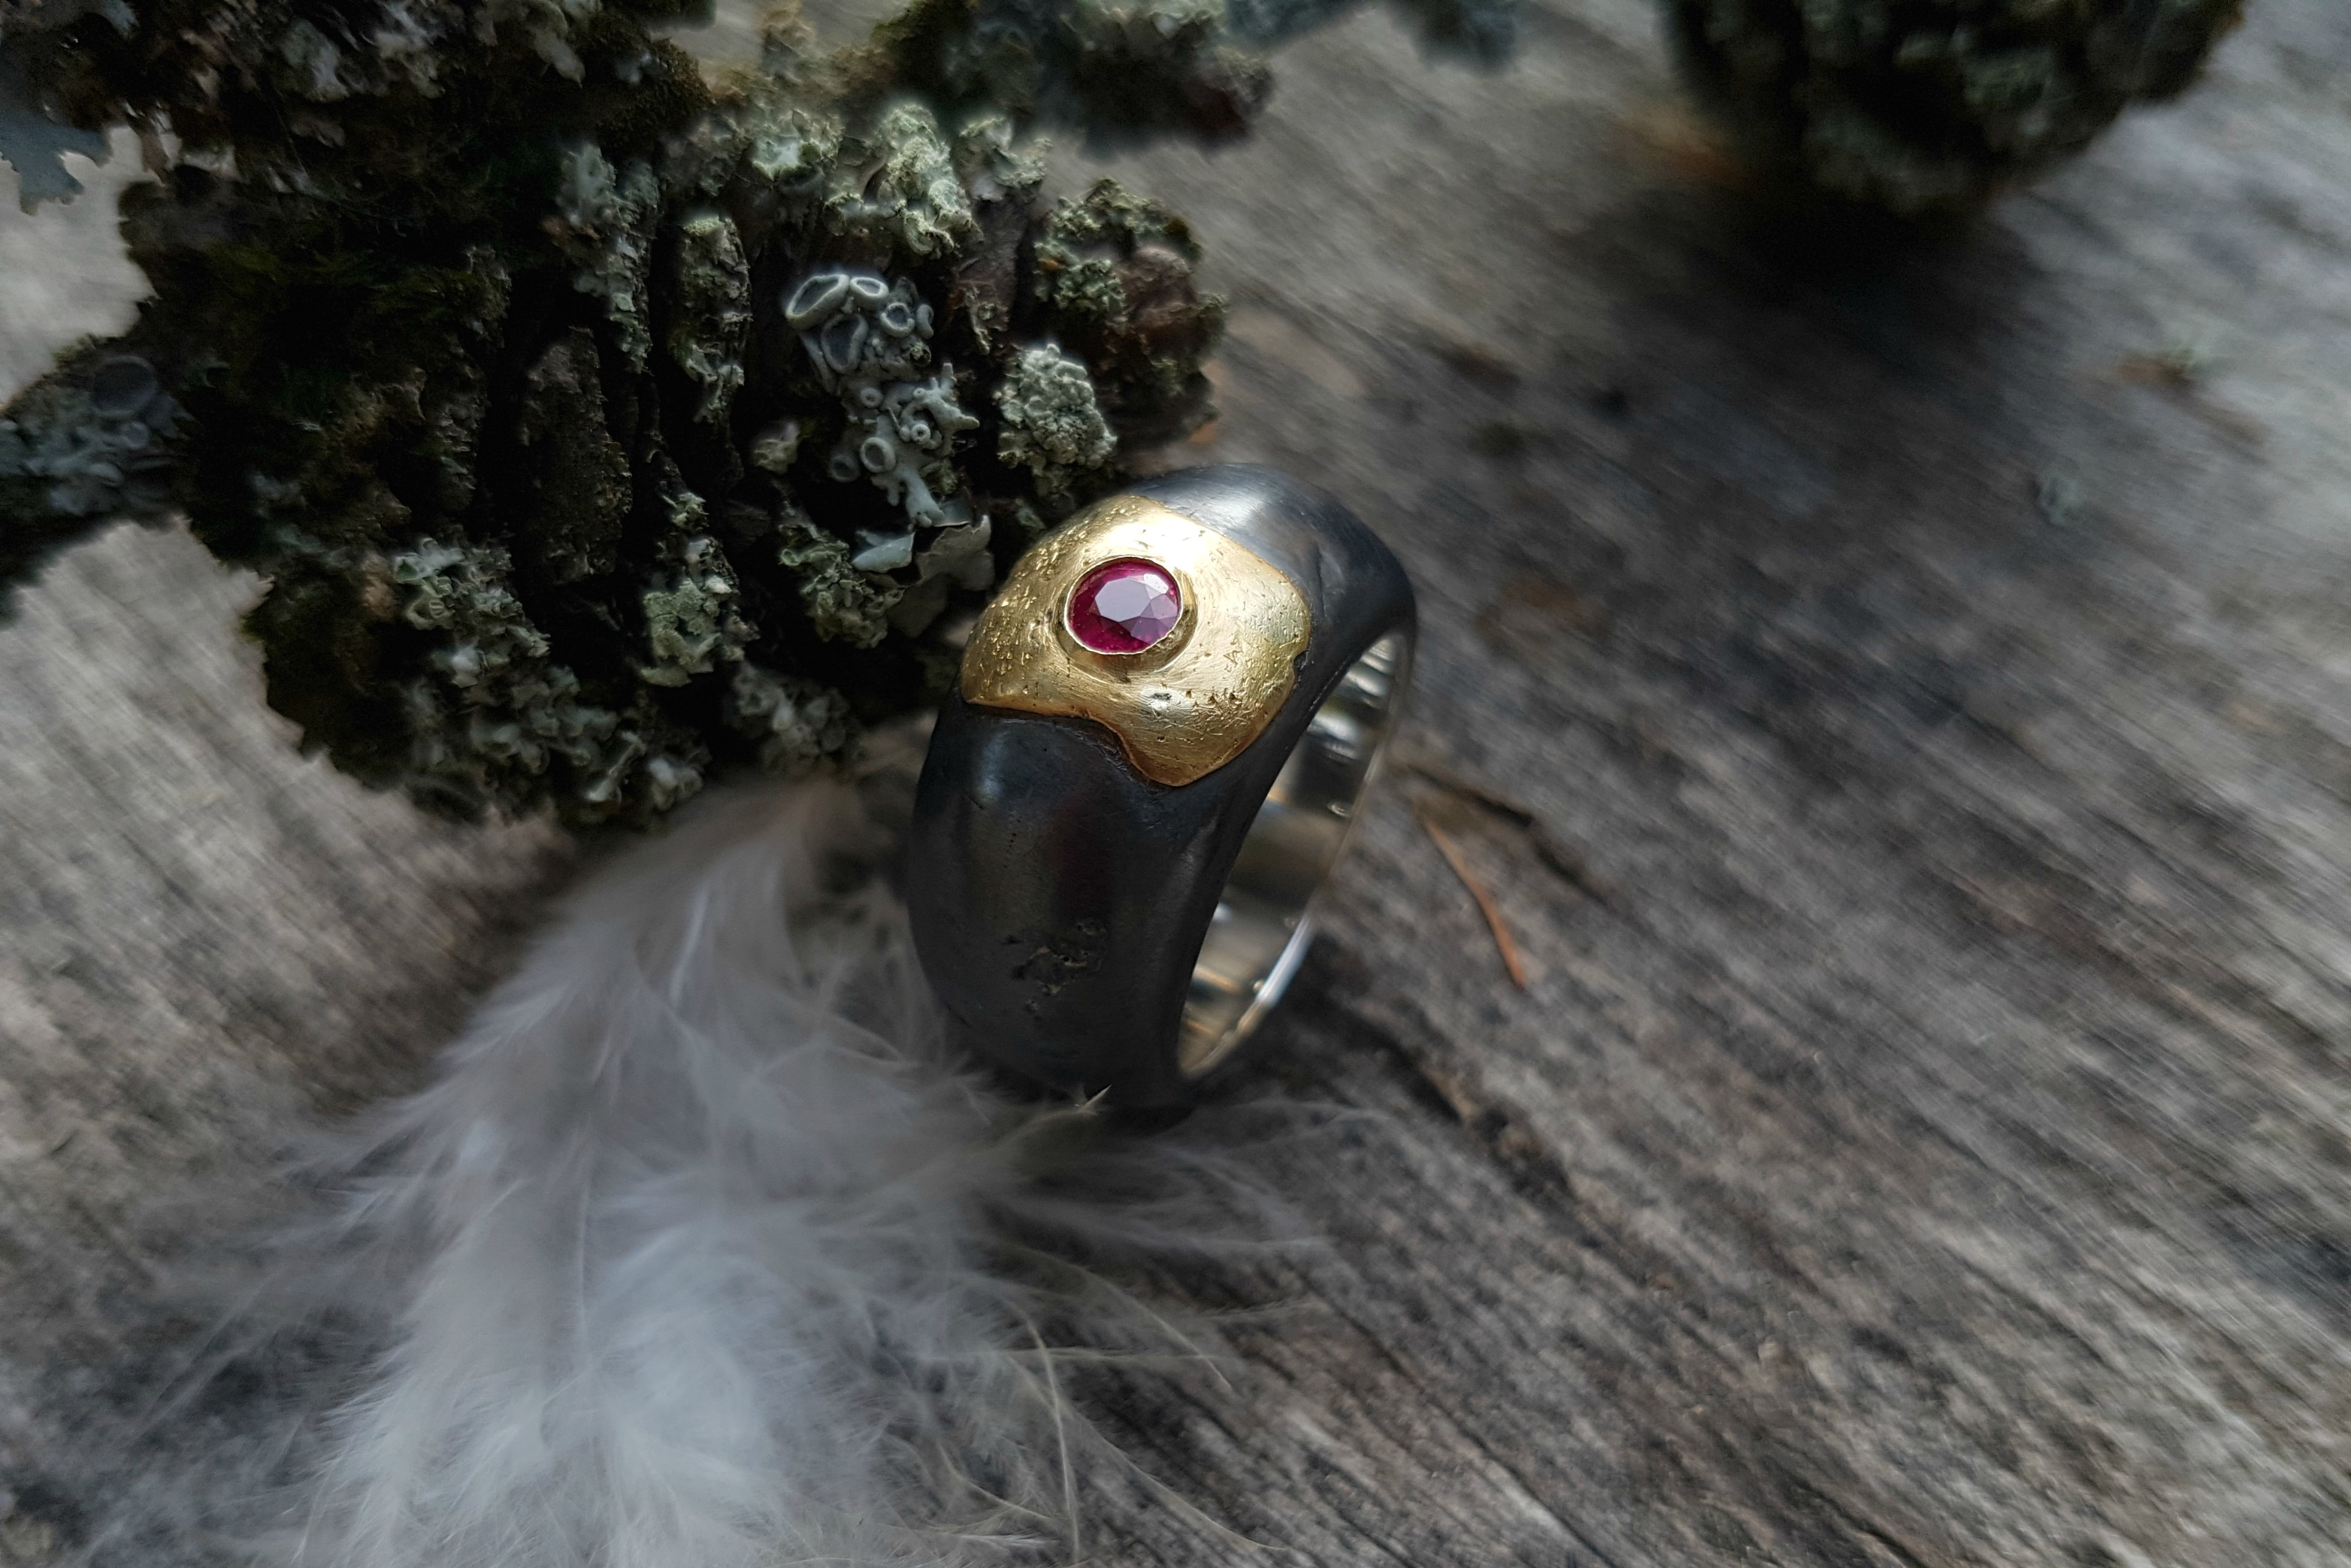 Carrousel-forge-antique-experimental-bague-or-rubis